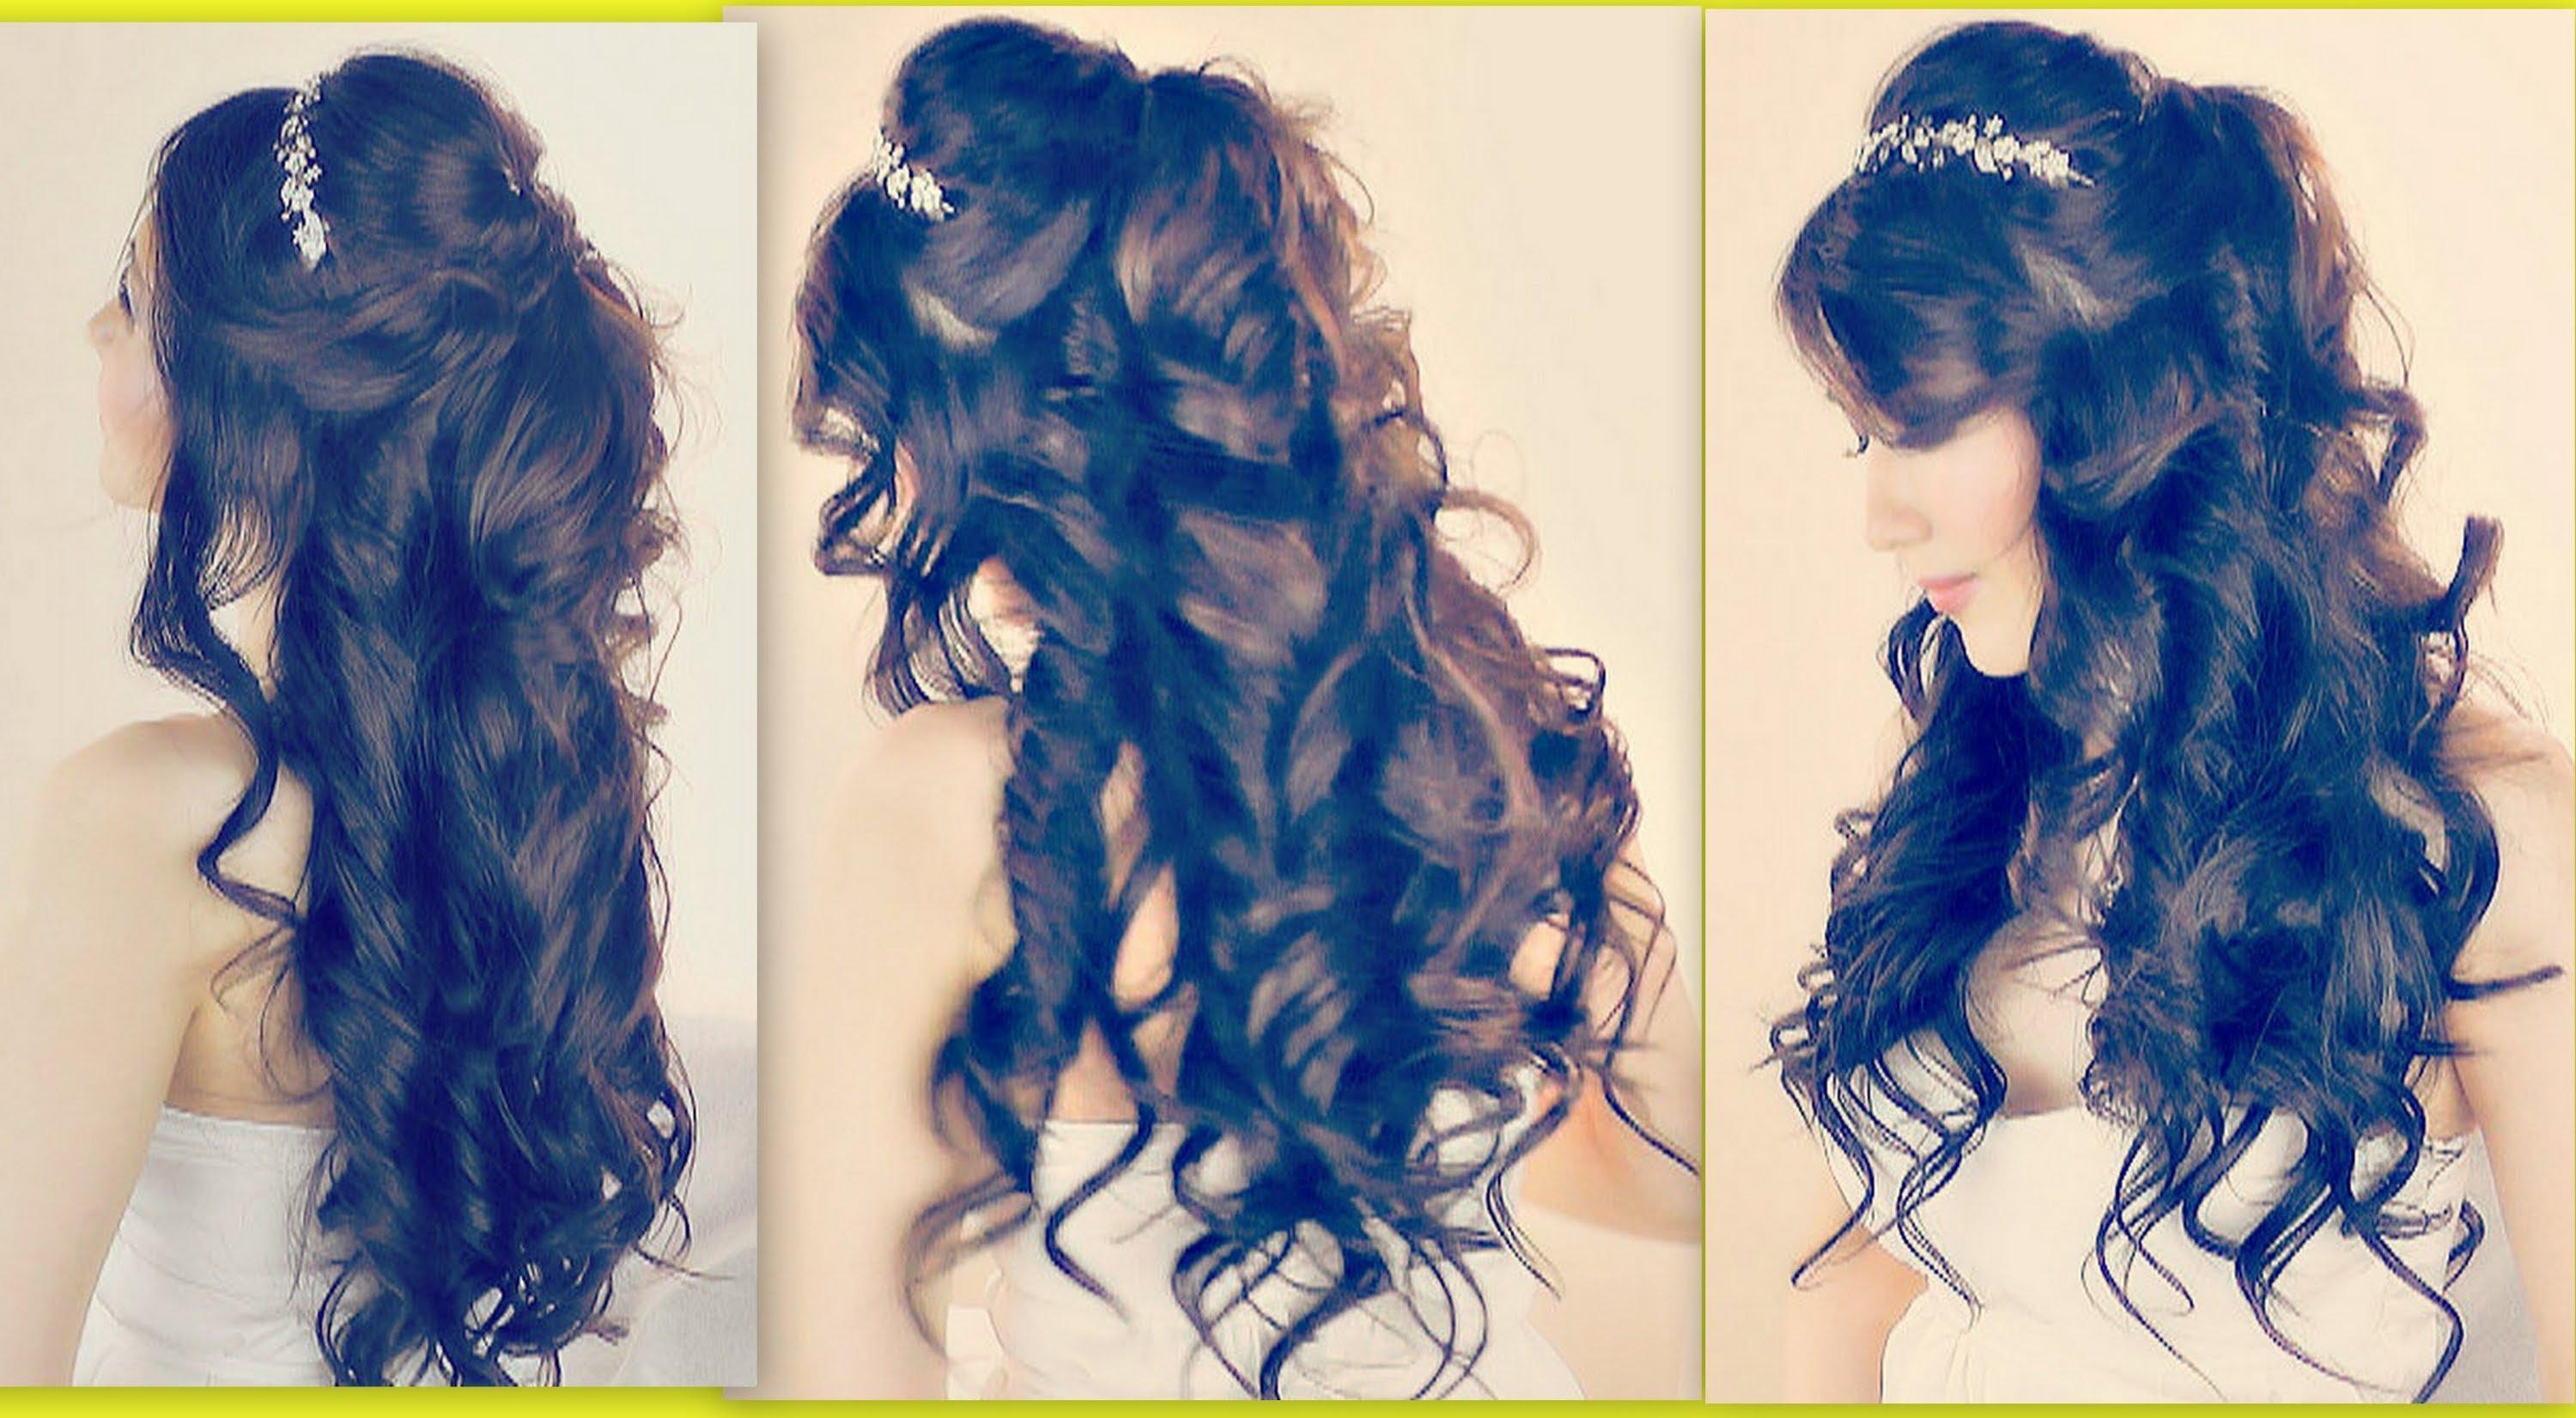 Lush Curly Hairstyle Diy Fashion Tips Diy Fashion Projects 306634 On Wookmark